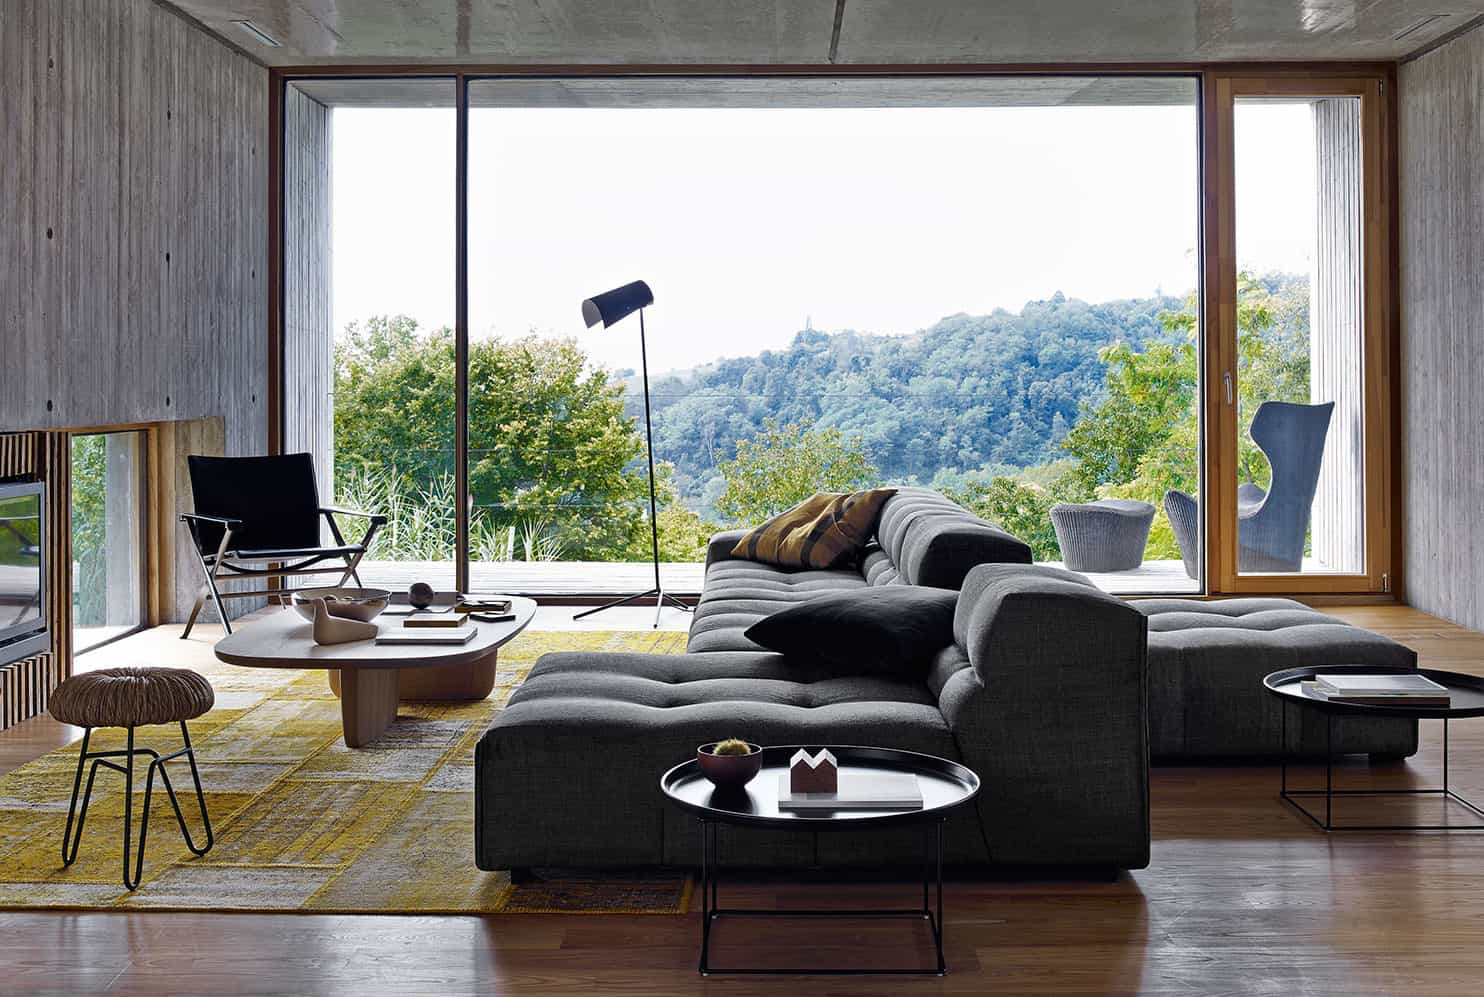 Muebles B&b This Trendy Cubic Sofa Is A New Addition To Tufty Time